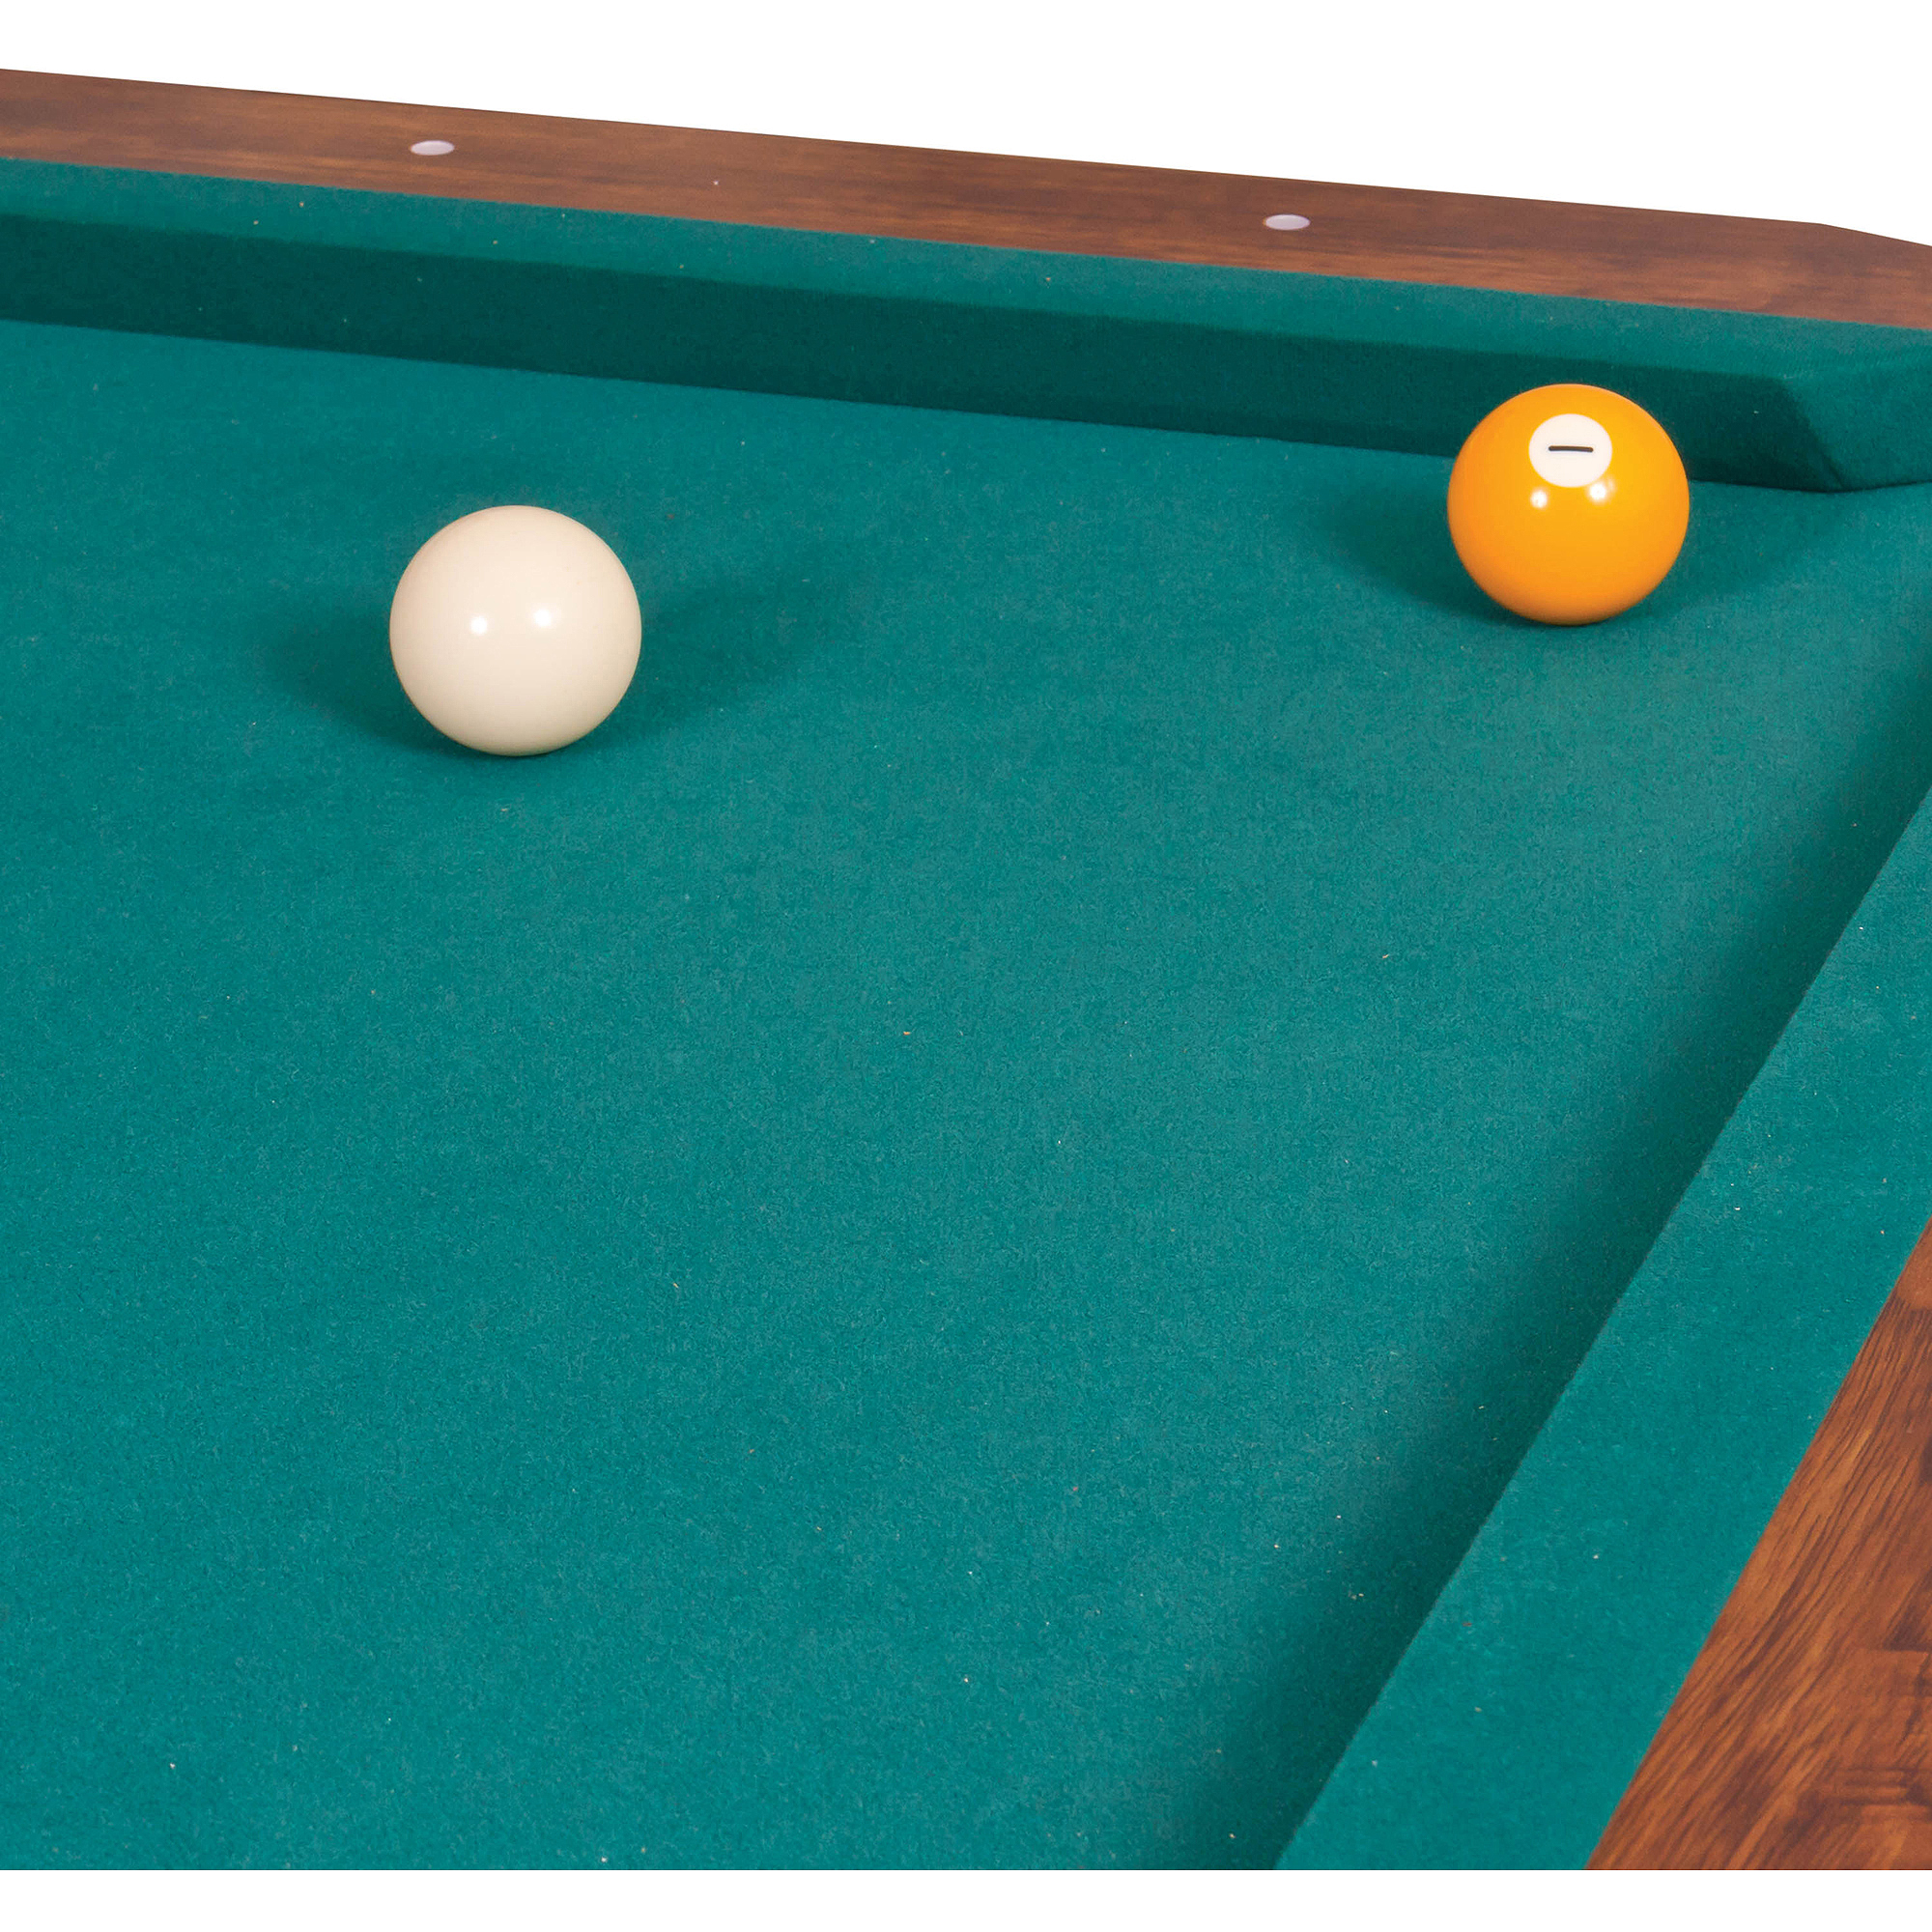 EastPoint Sports 87 Inch Brighton Billiard Pool Table   Walmart.com